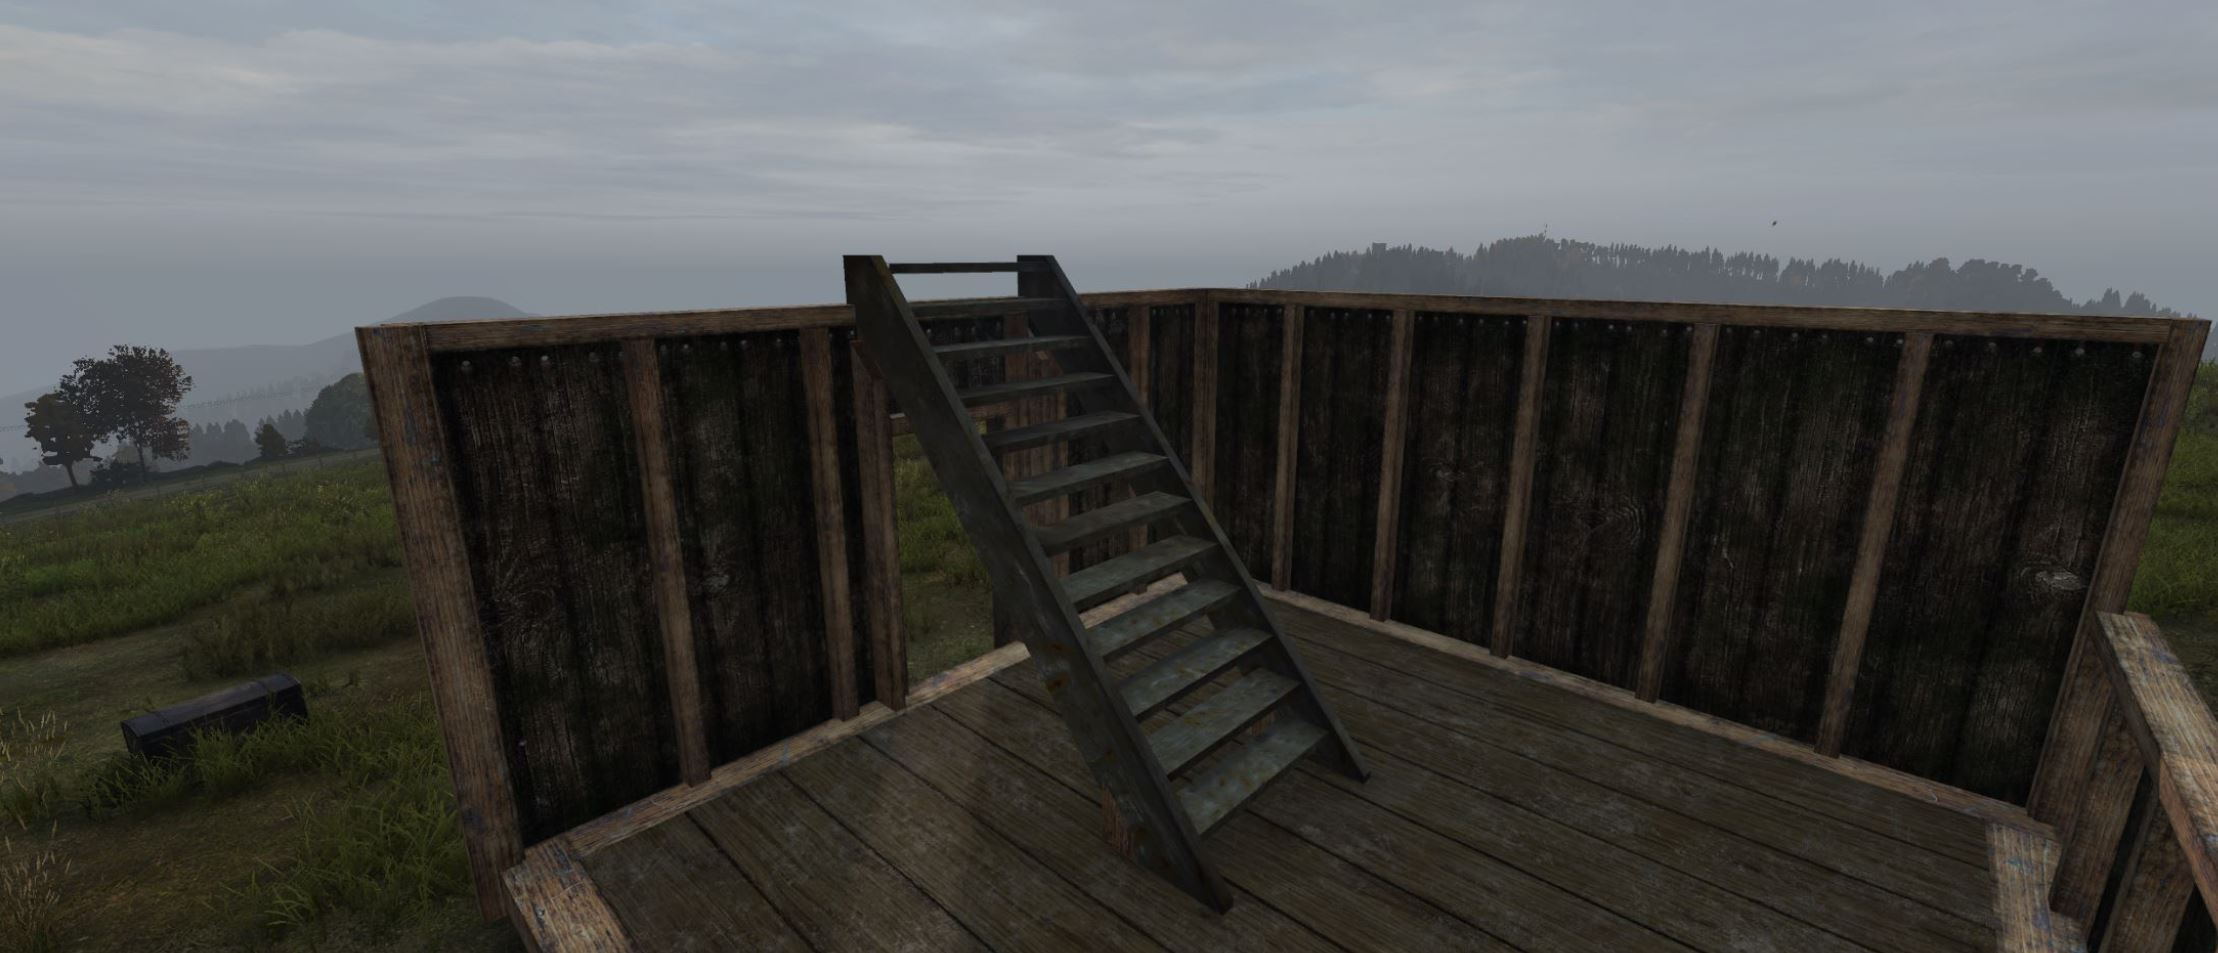 dayz-expansion-stair